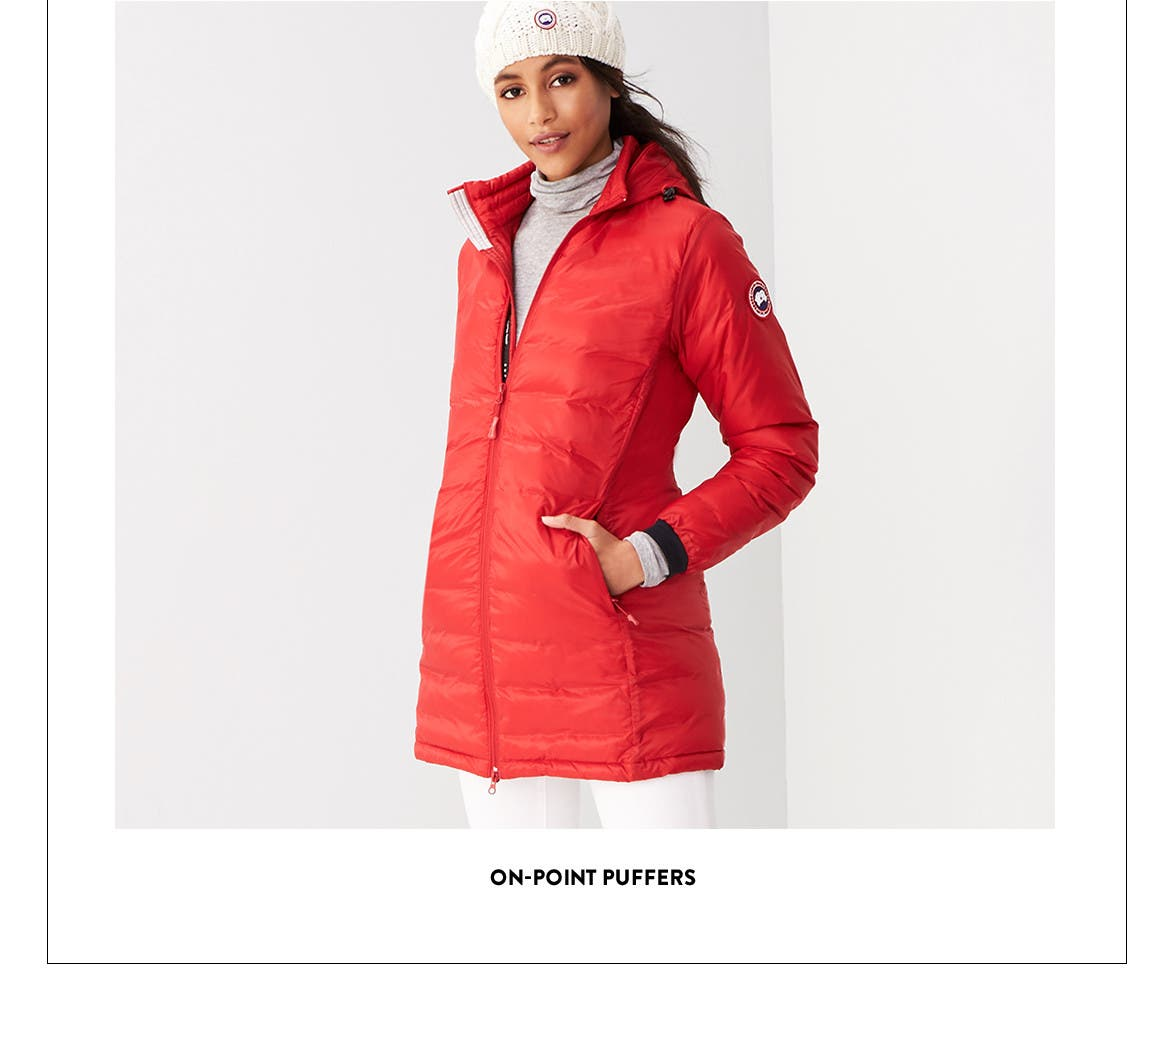 On-point puffer jackets.